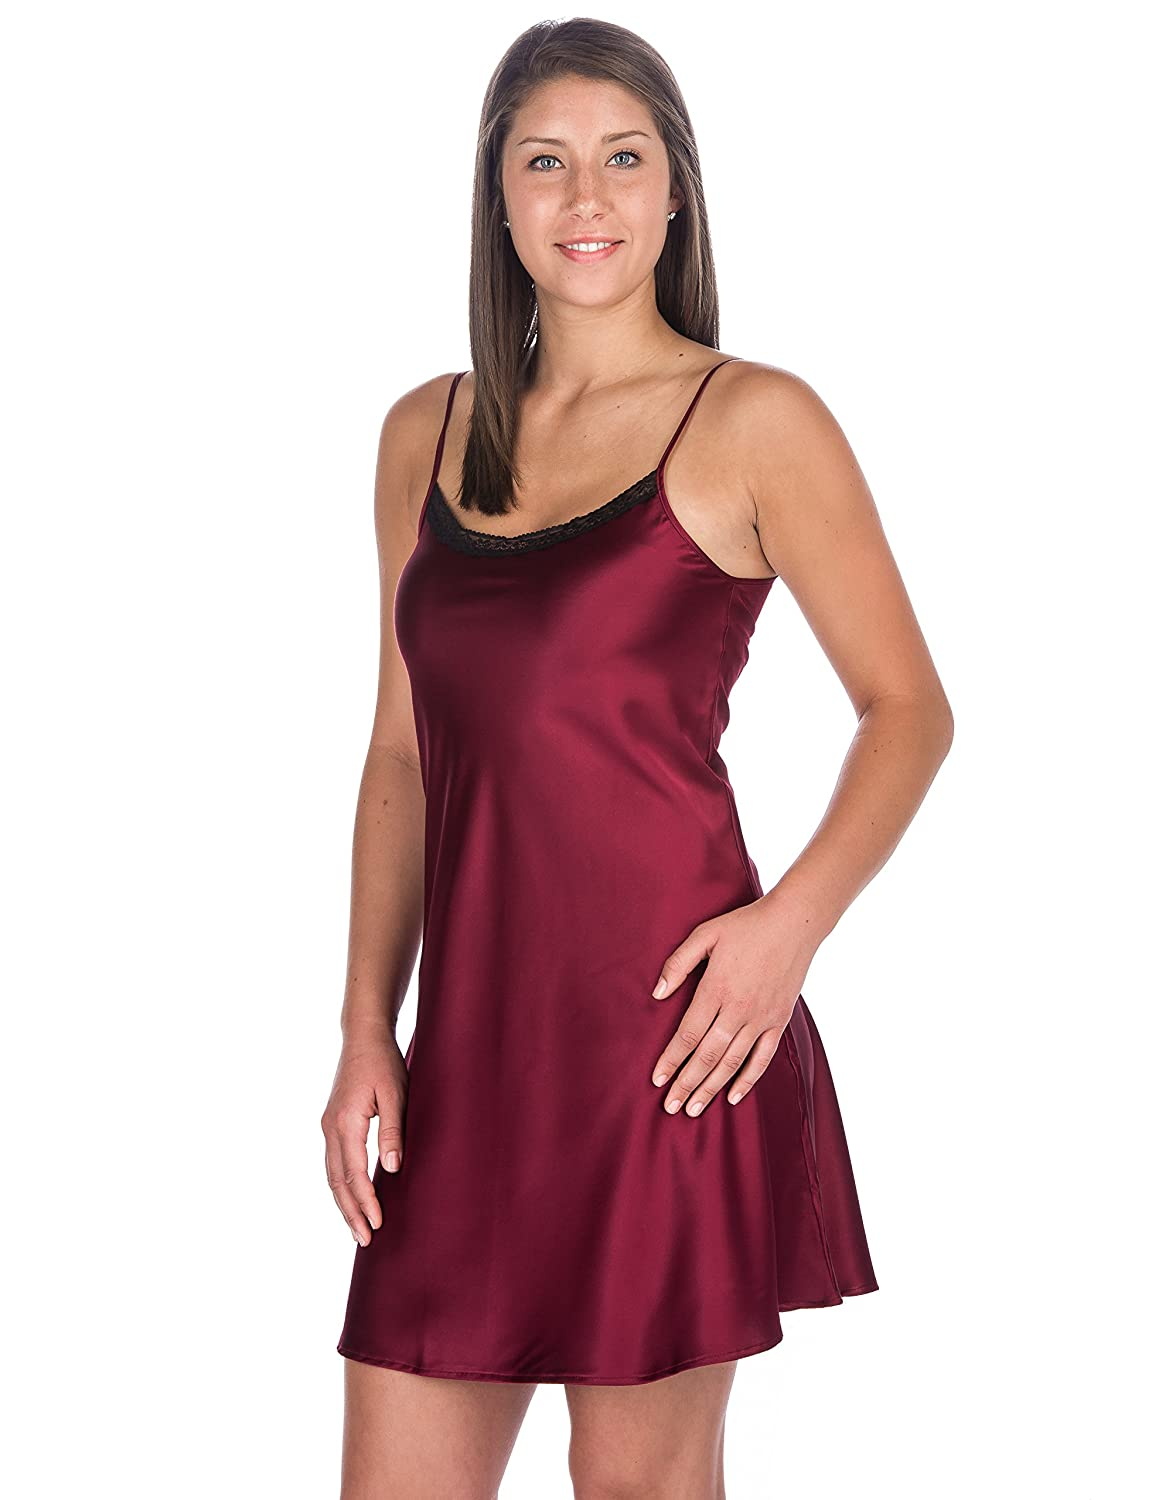 Noble Mount Womens Premium Satin Chemise/Nightgown with lace accent